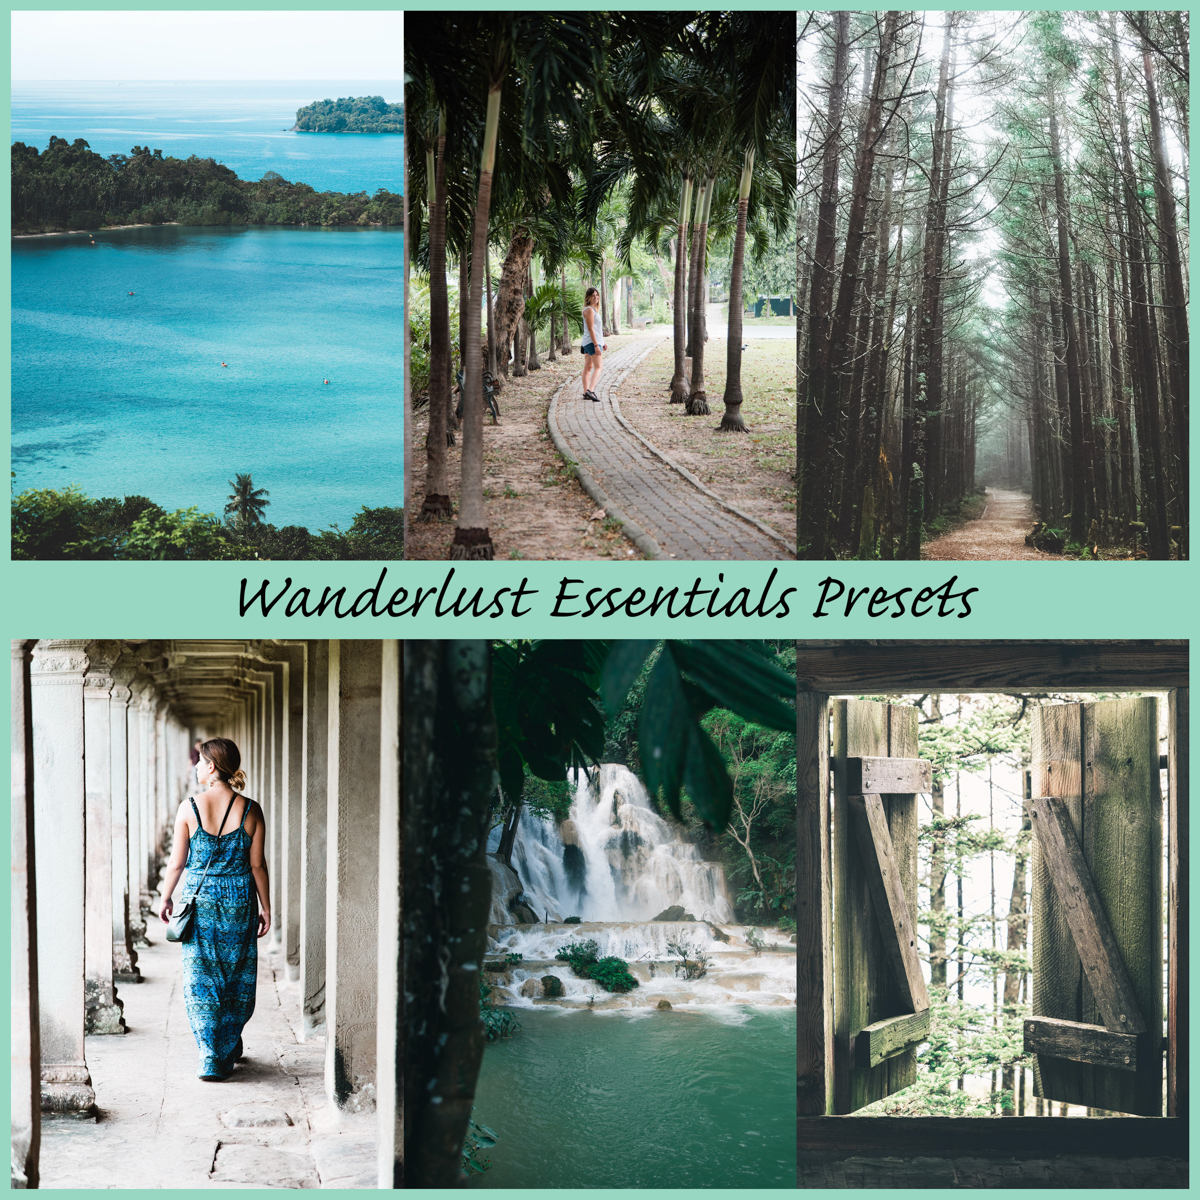 6 Wanderlust-Inspired Lightroom Presets to Enhance Your Travel Photos